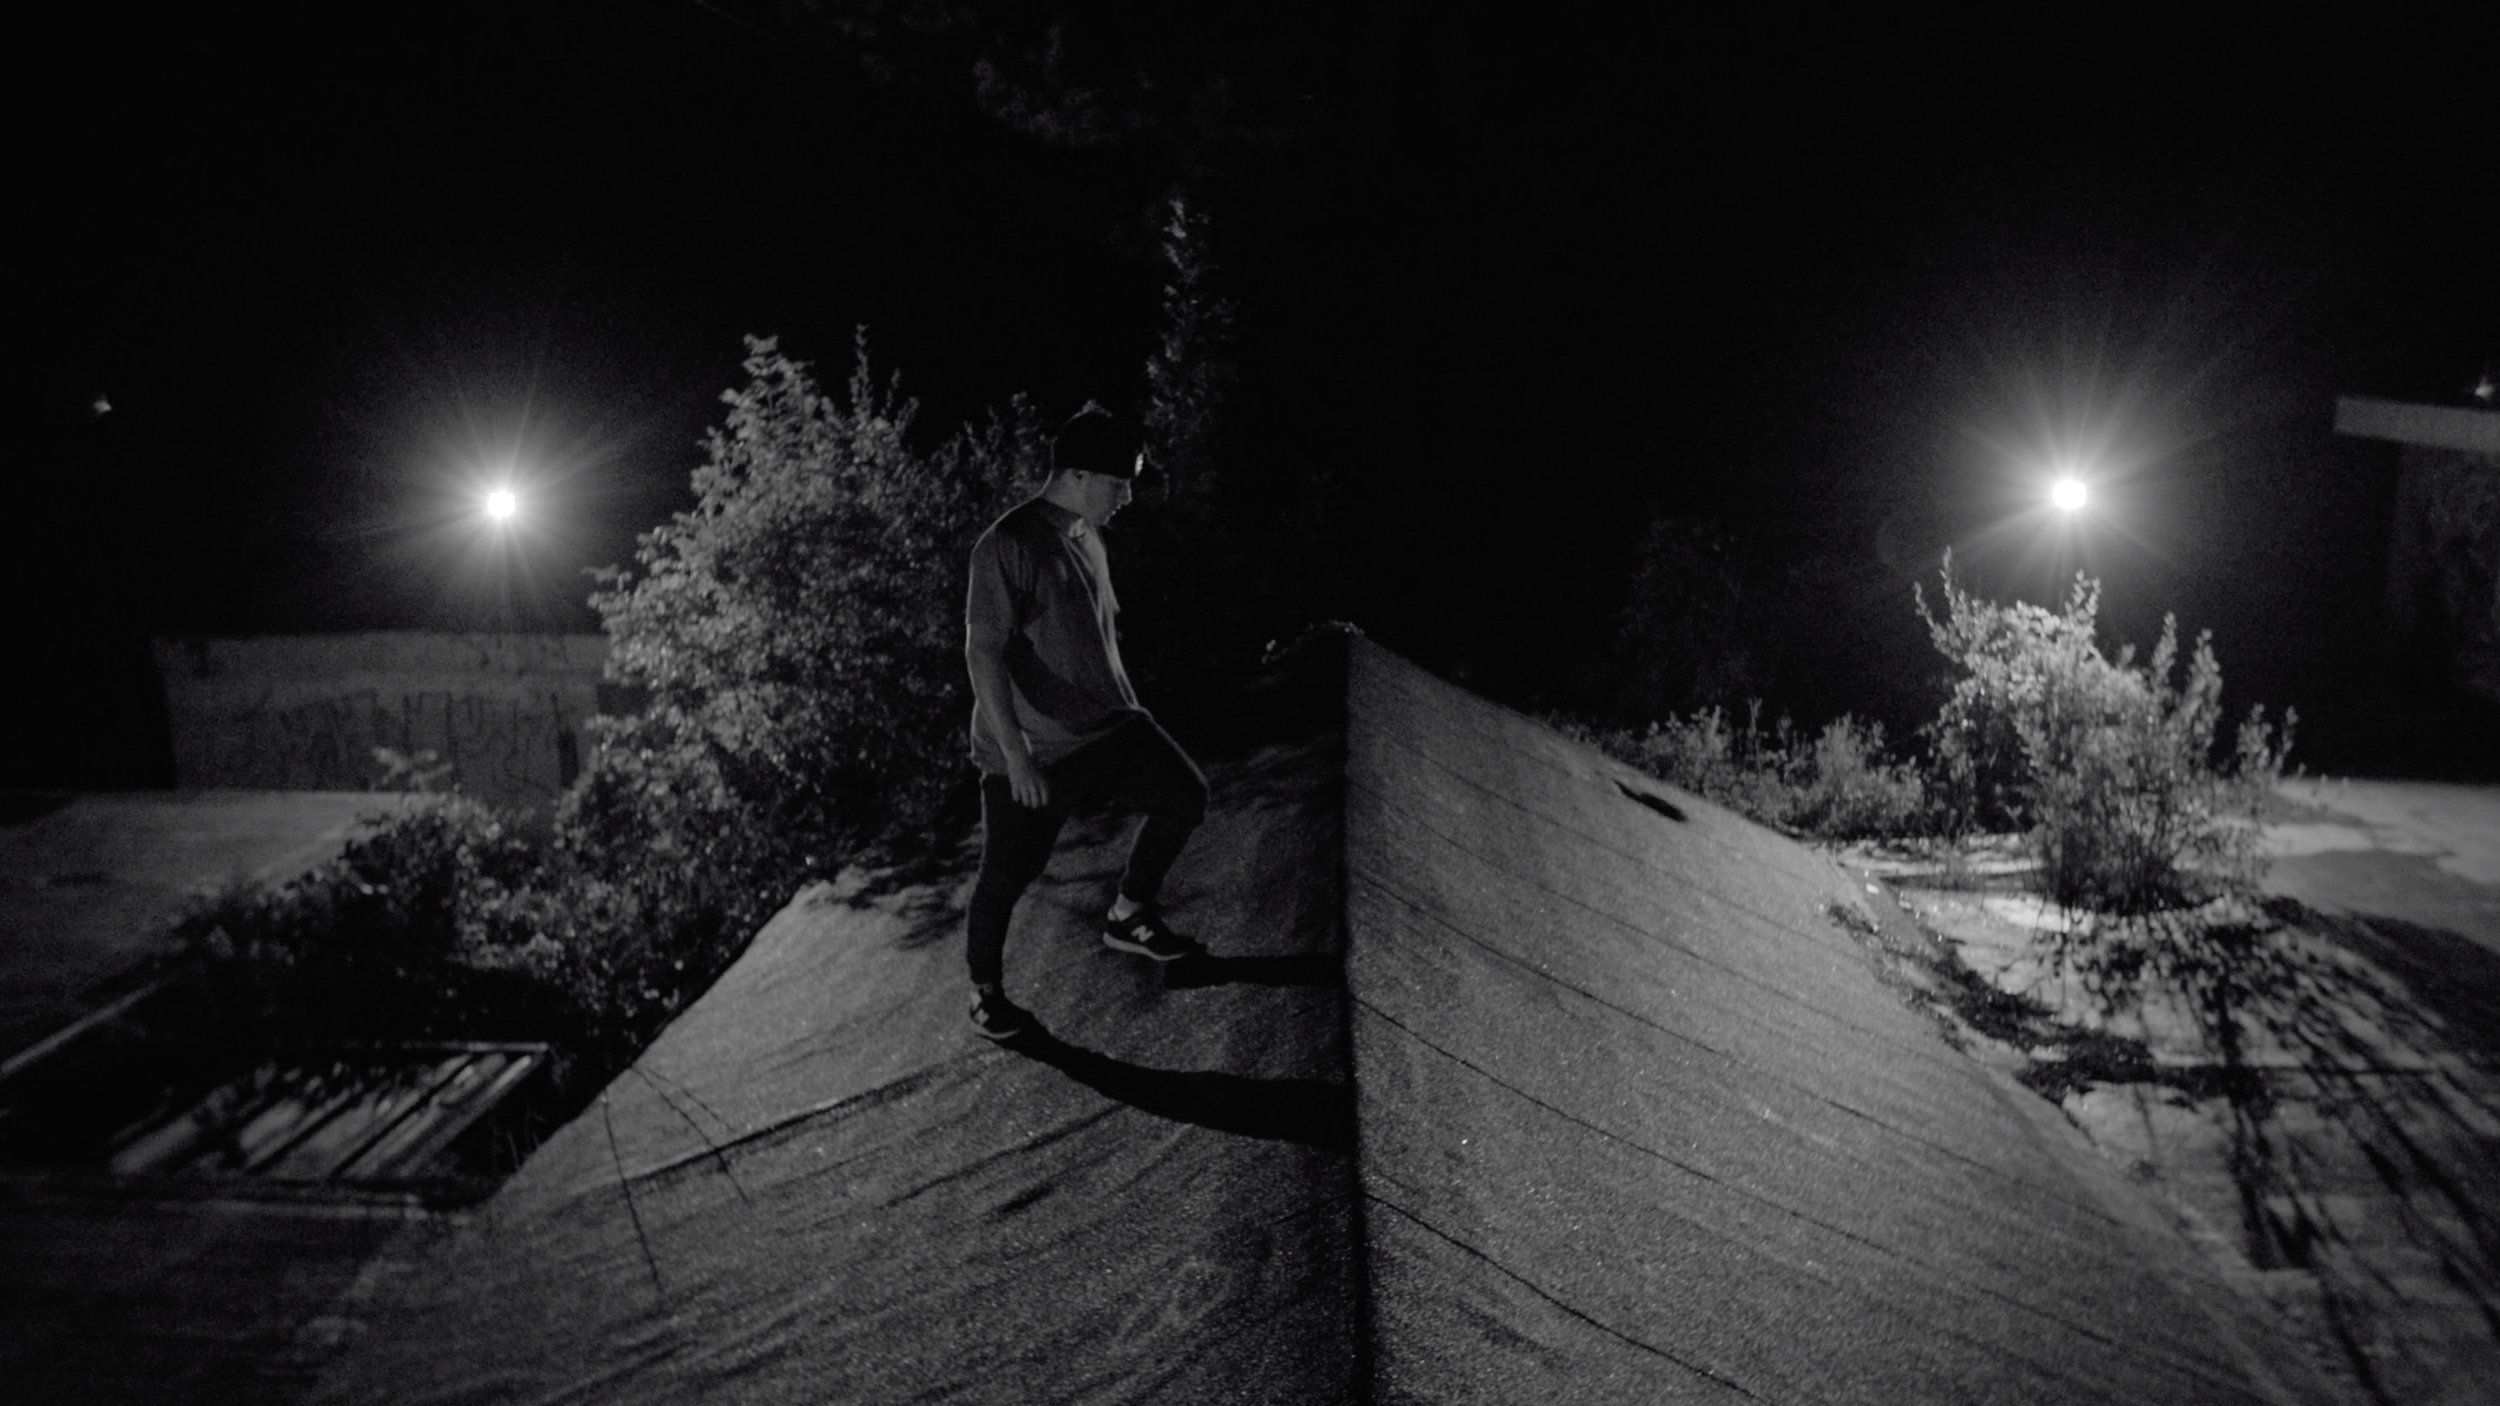 LIGHT WORK - A collection of stills with a look behind the scenes